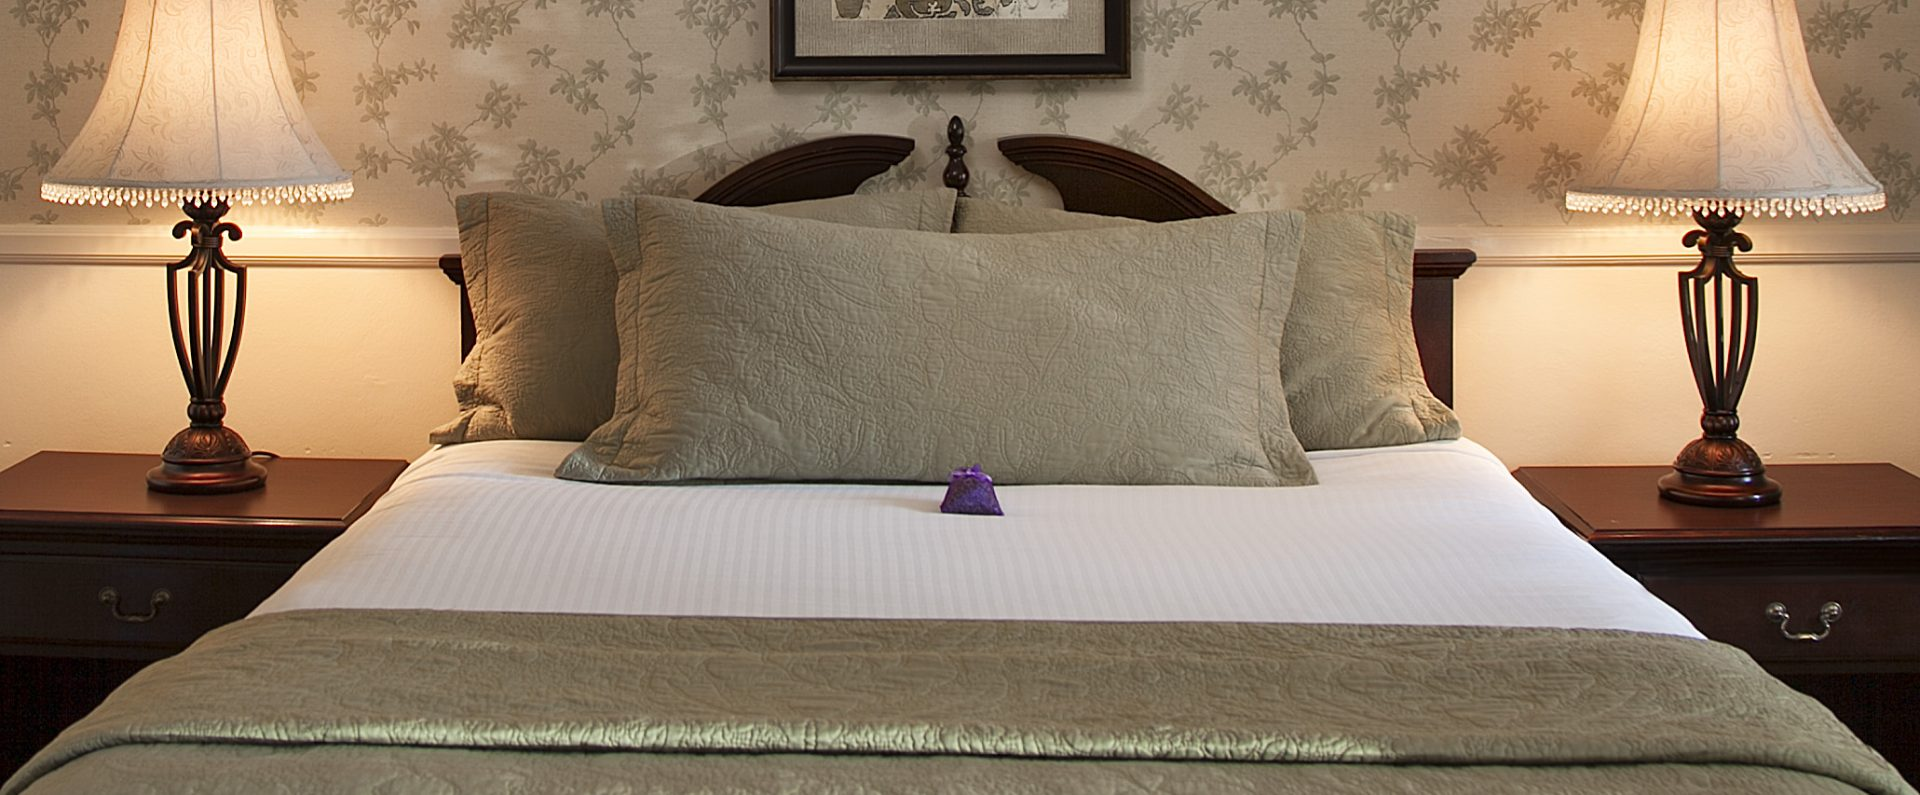 Lavender Inn by the Sea standard single bed